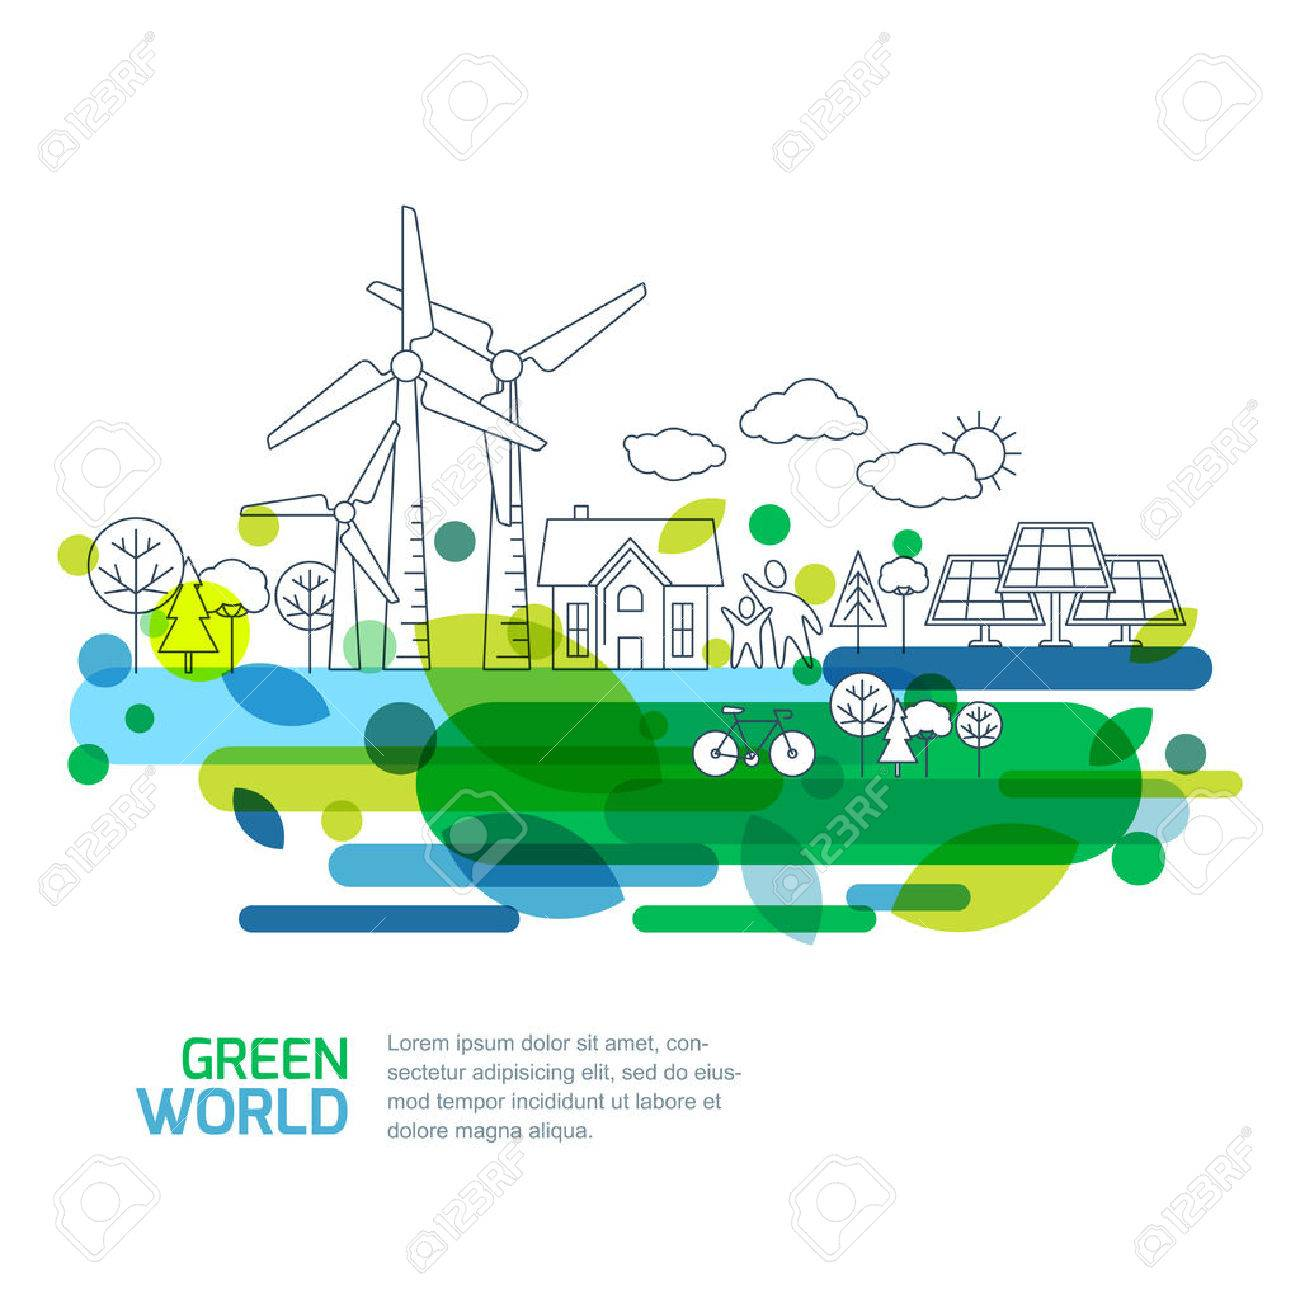 Green landscape illustration, isolated on white background. Saving nature and ecology concept. Vector linear trees, house, people and alternative energy generators. Design for save earth day. - 53653252